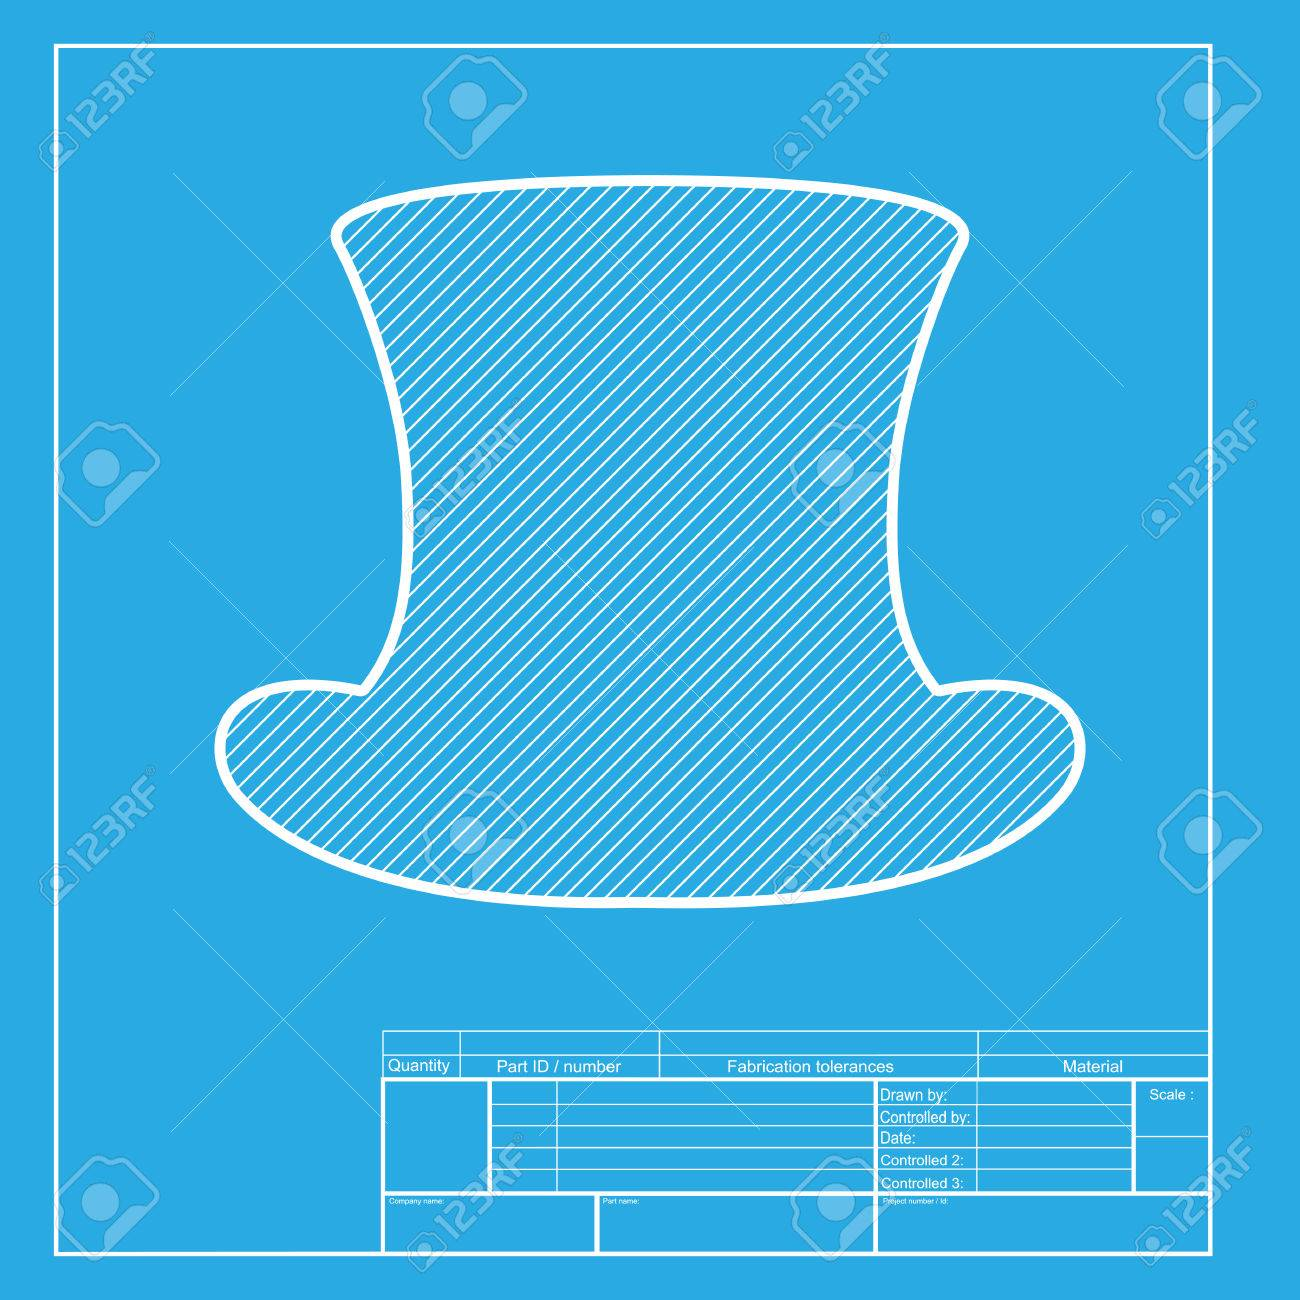 top hat sign white section of icon on blueprint template royalty